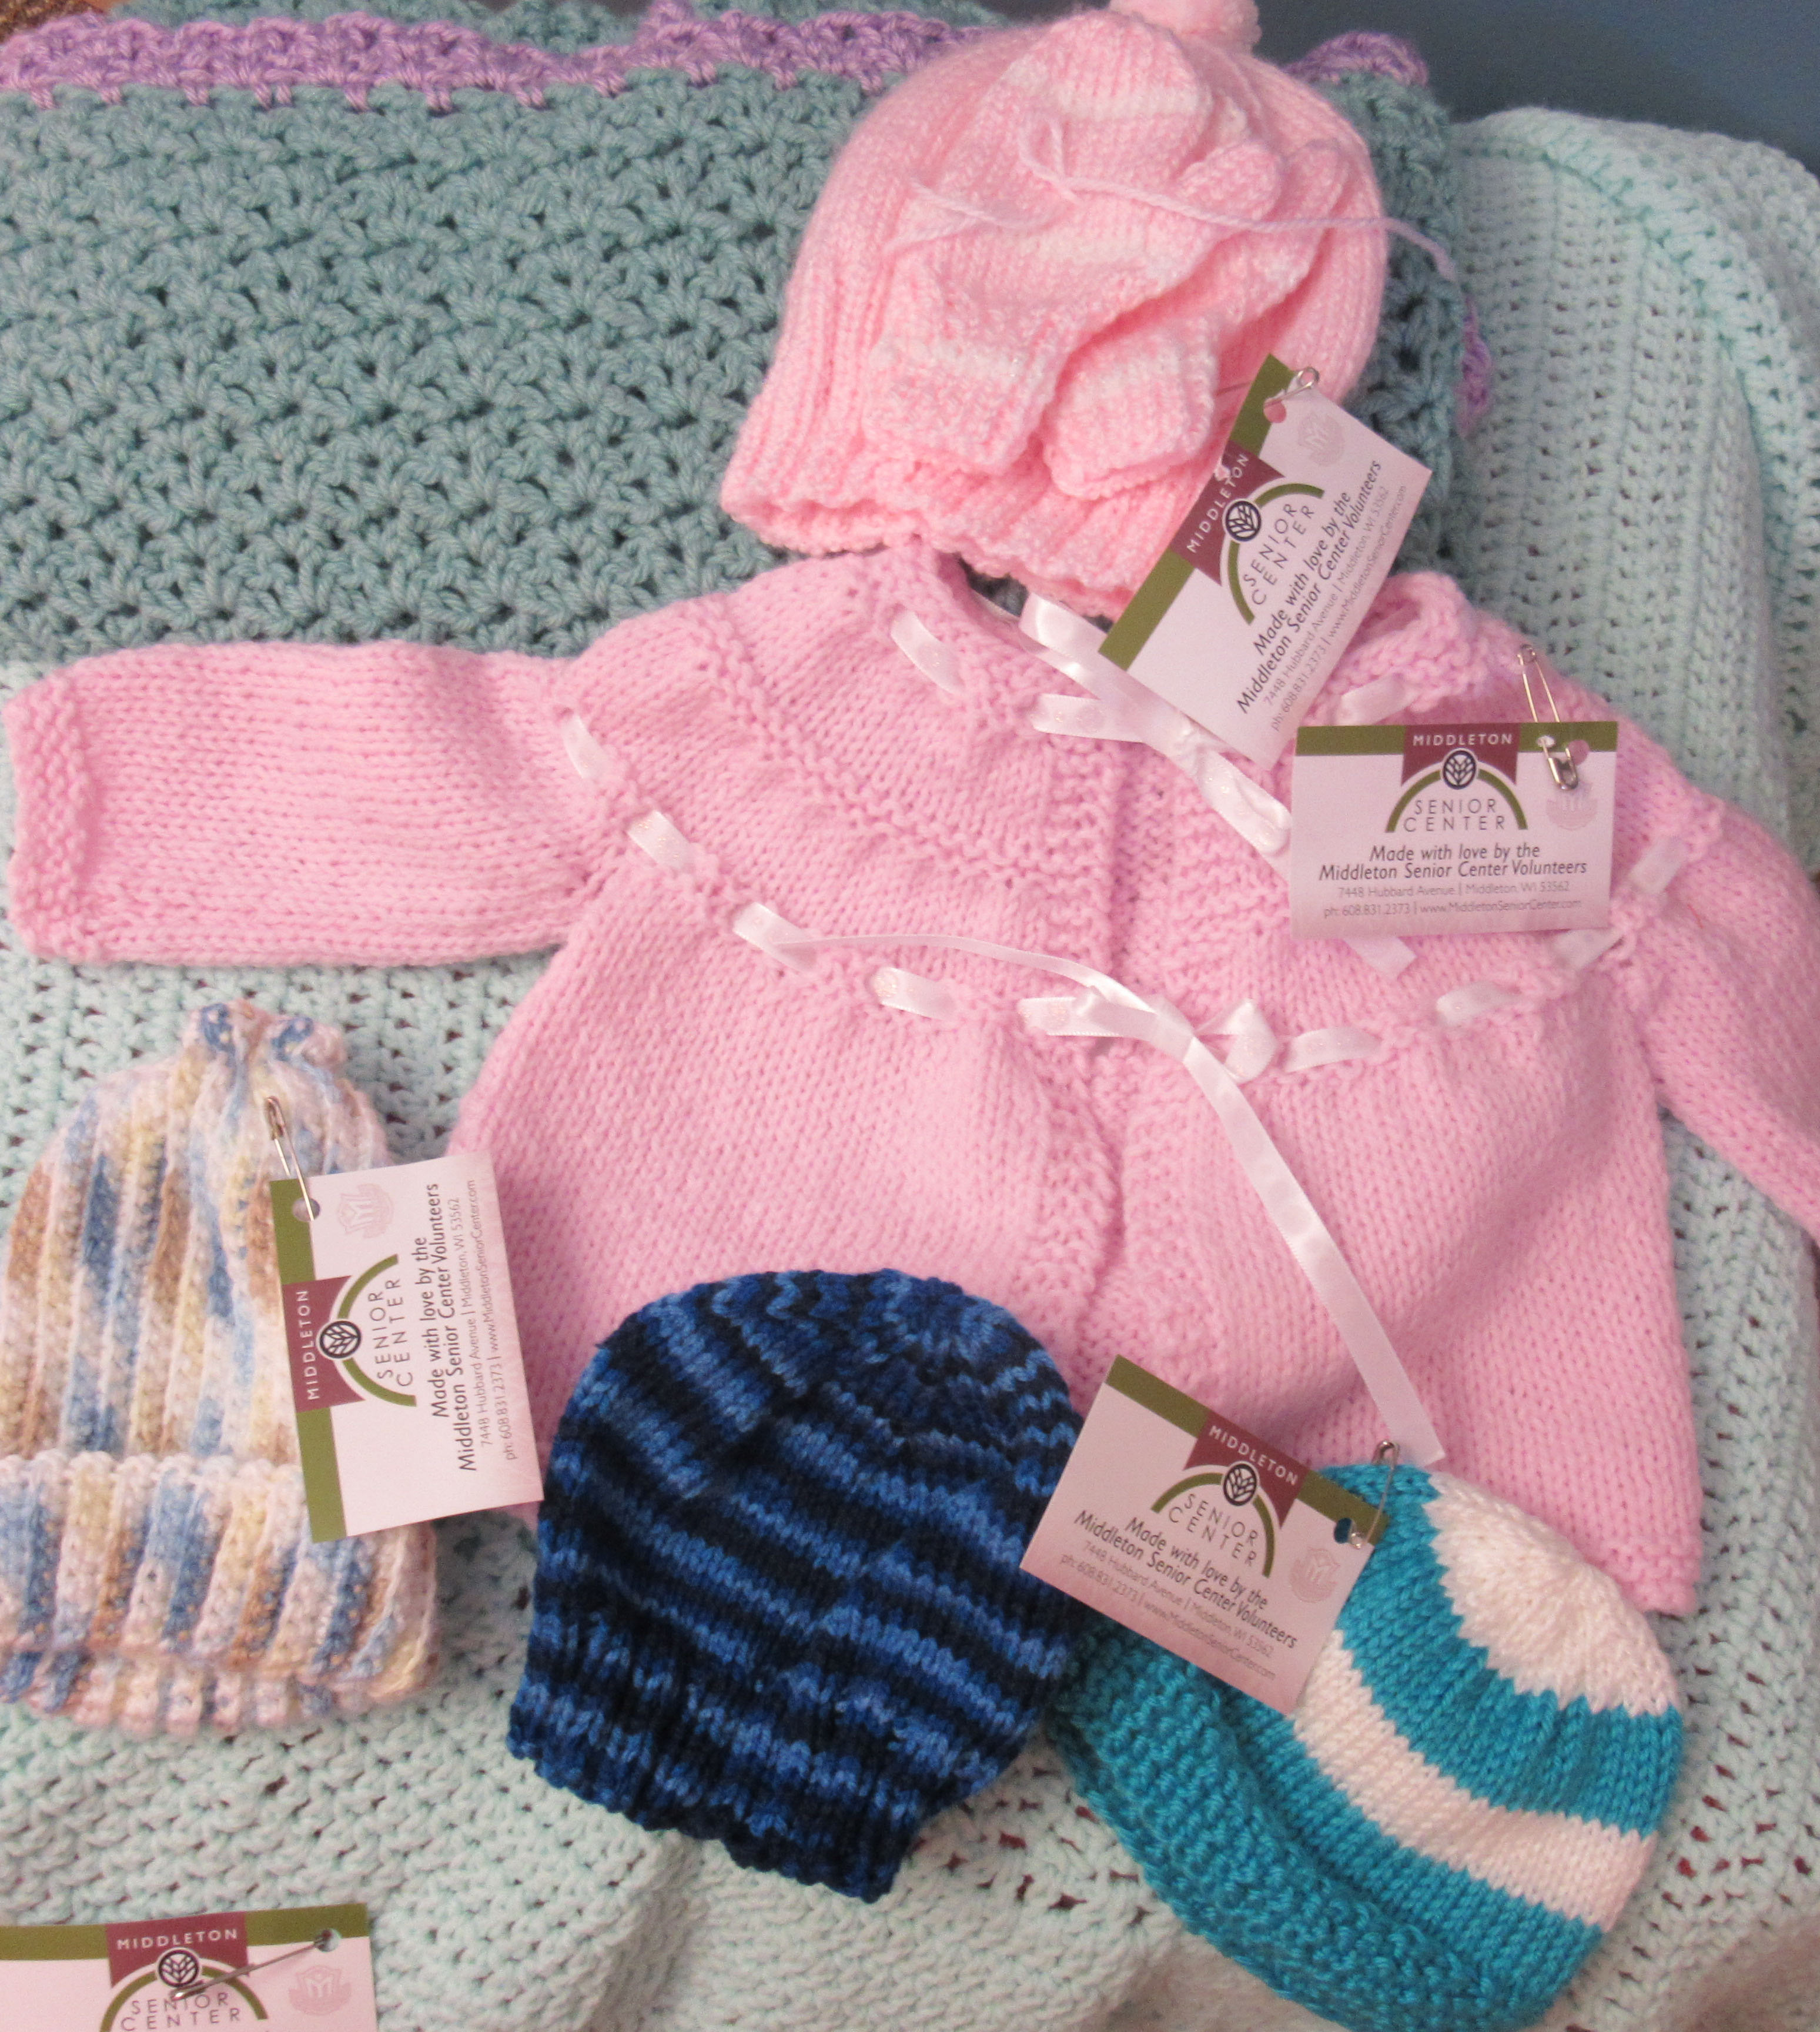 Beautiful handmade baby items.